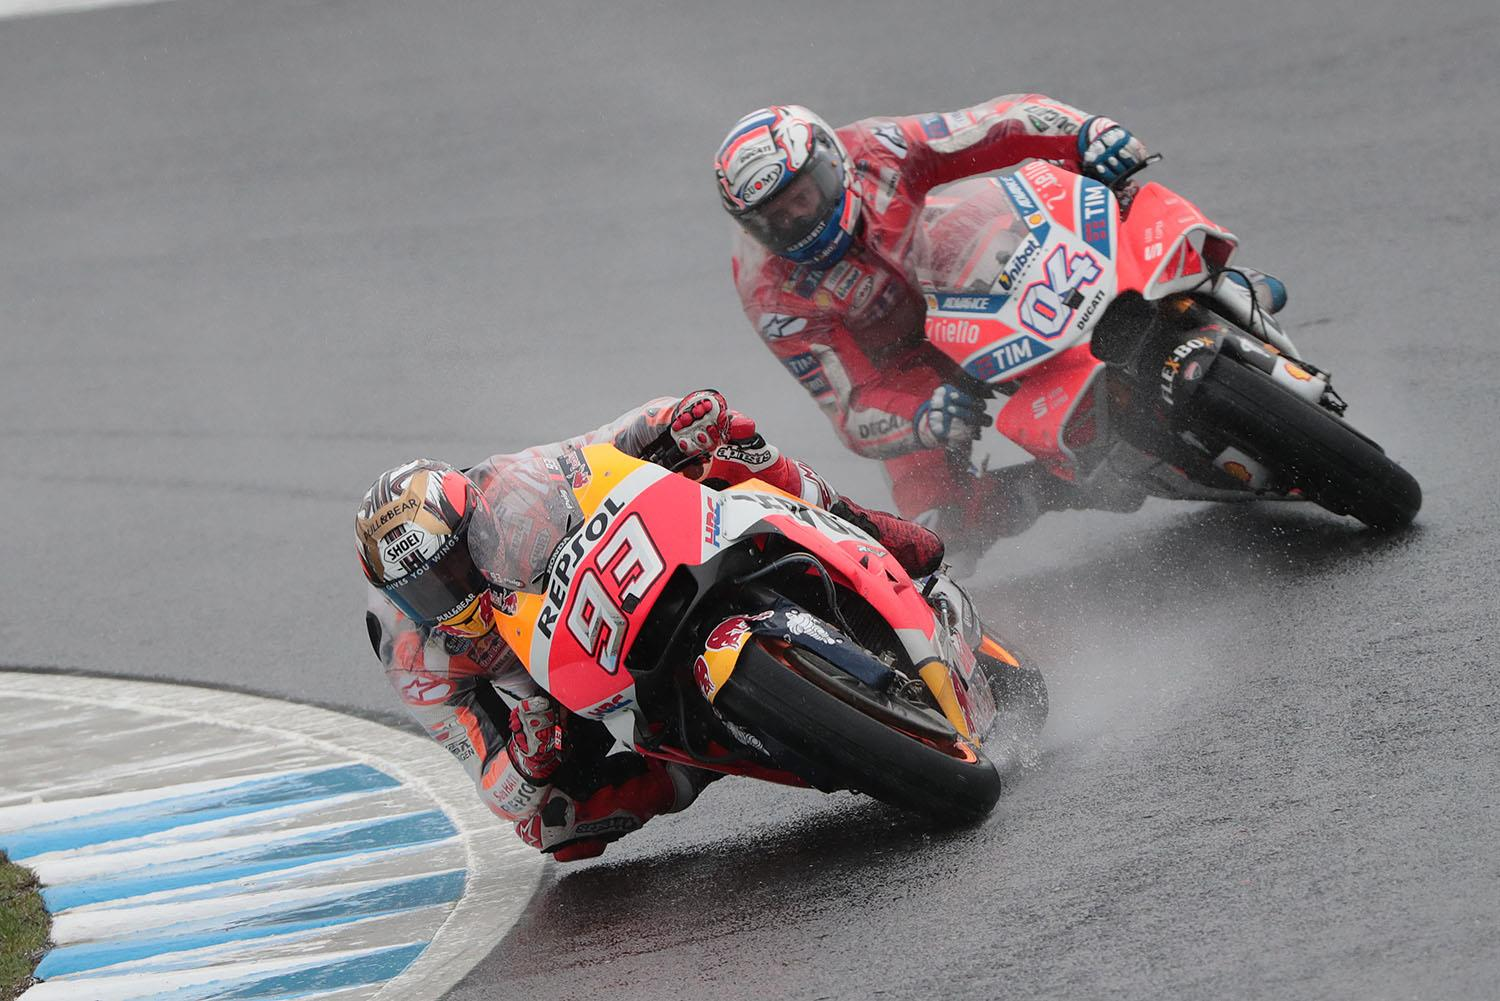 Pedrosa takes pole, Marquee to start at 7th